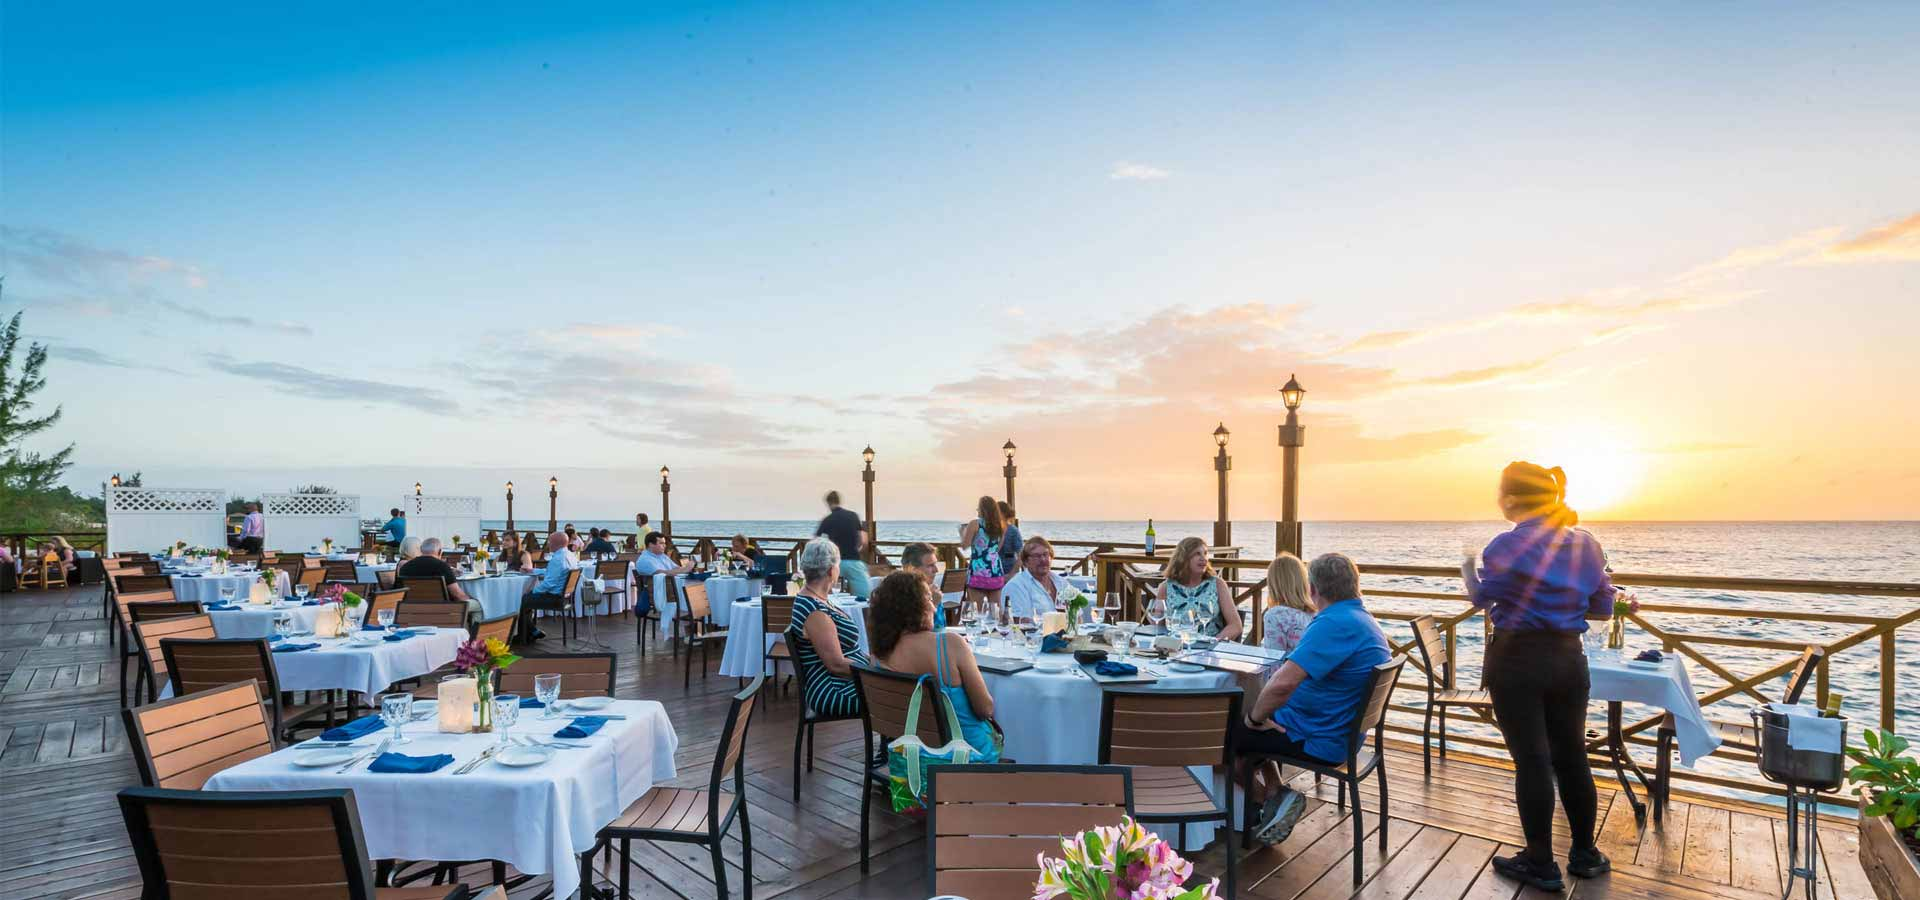 Cayman's Premium Waterfront Dining Restaurant